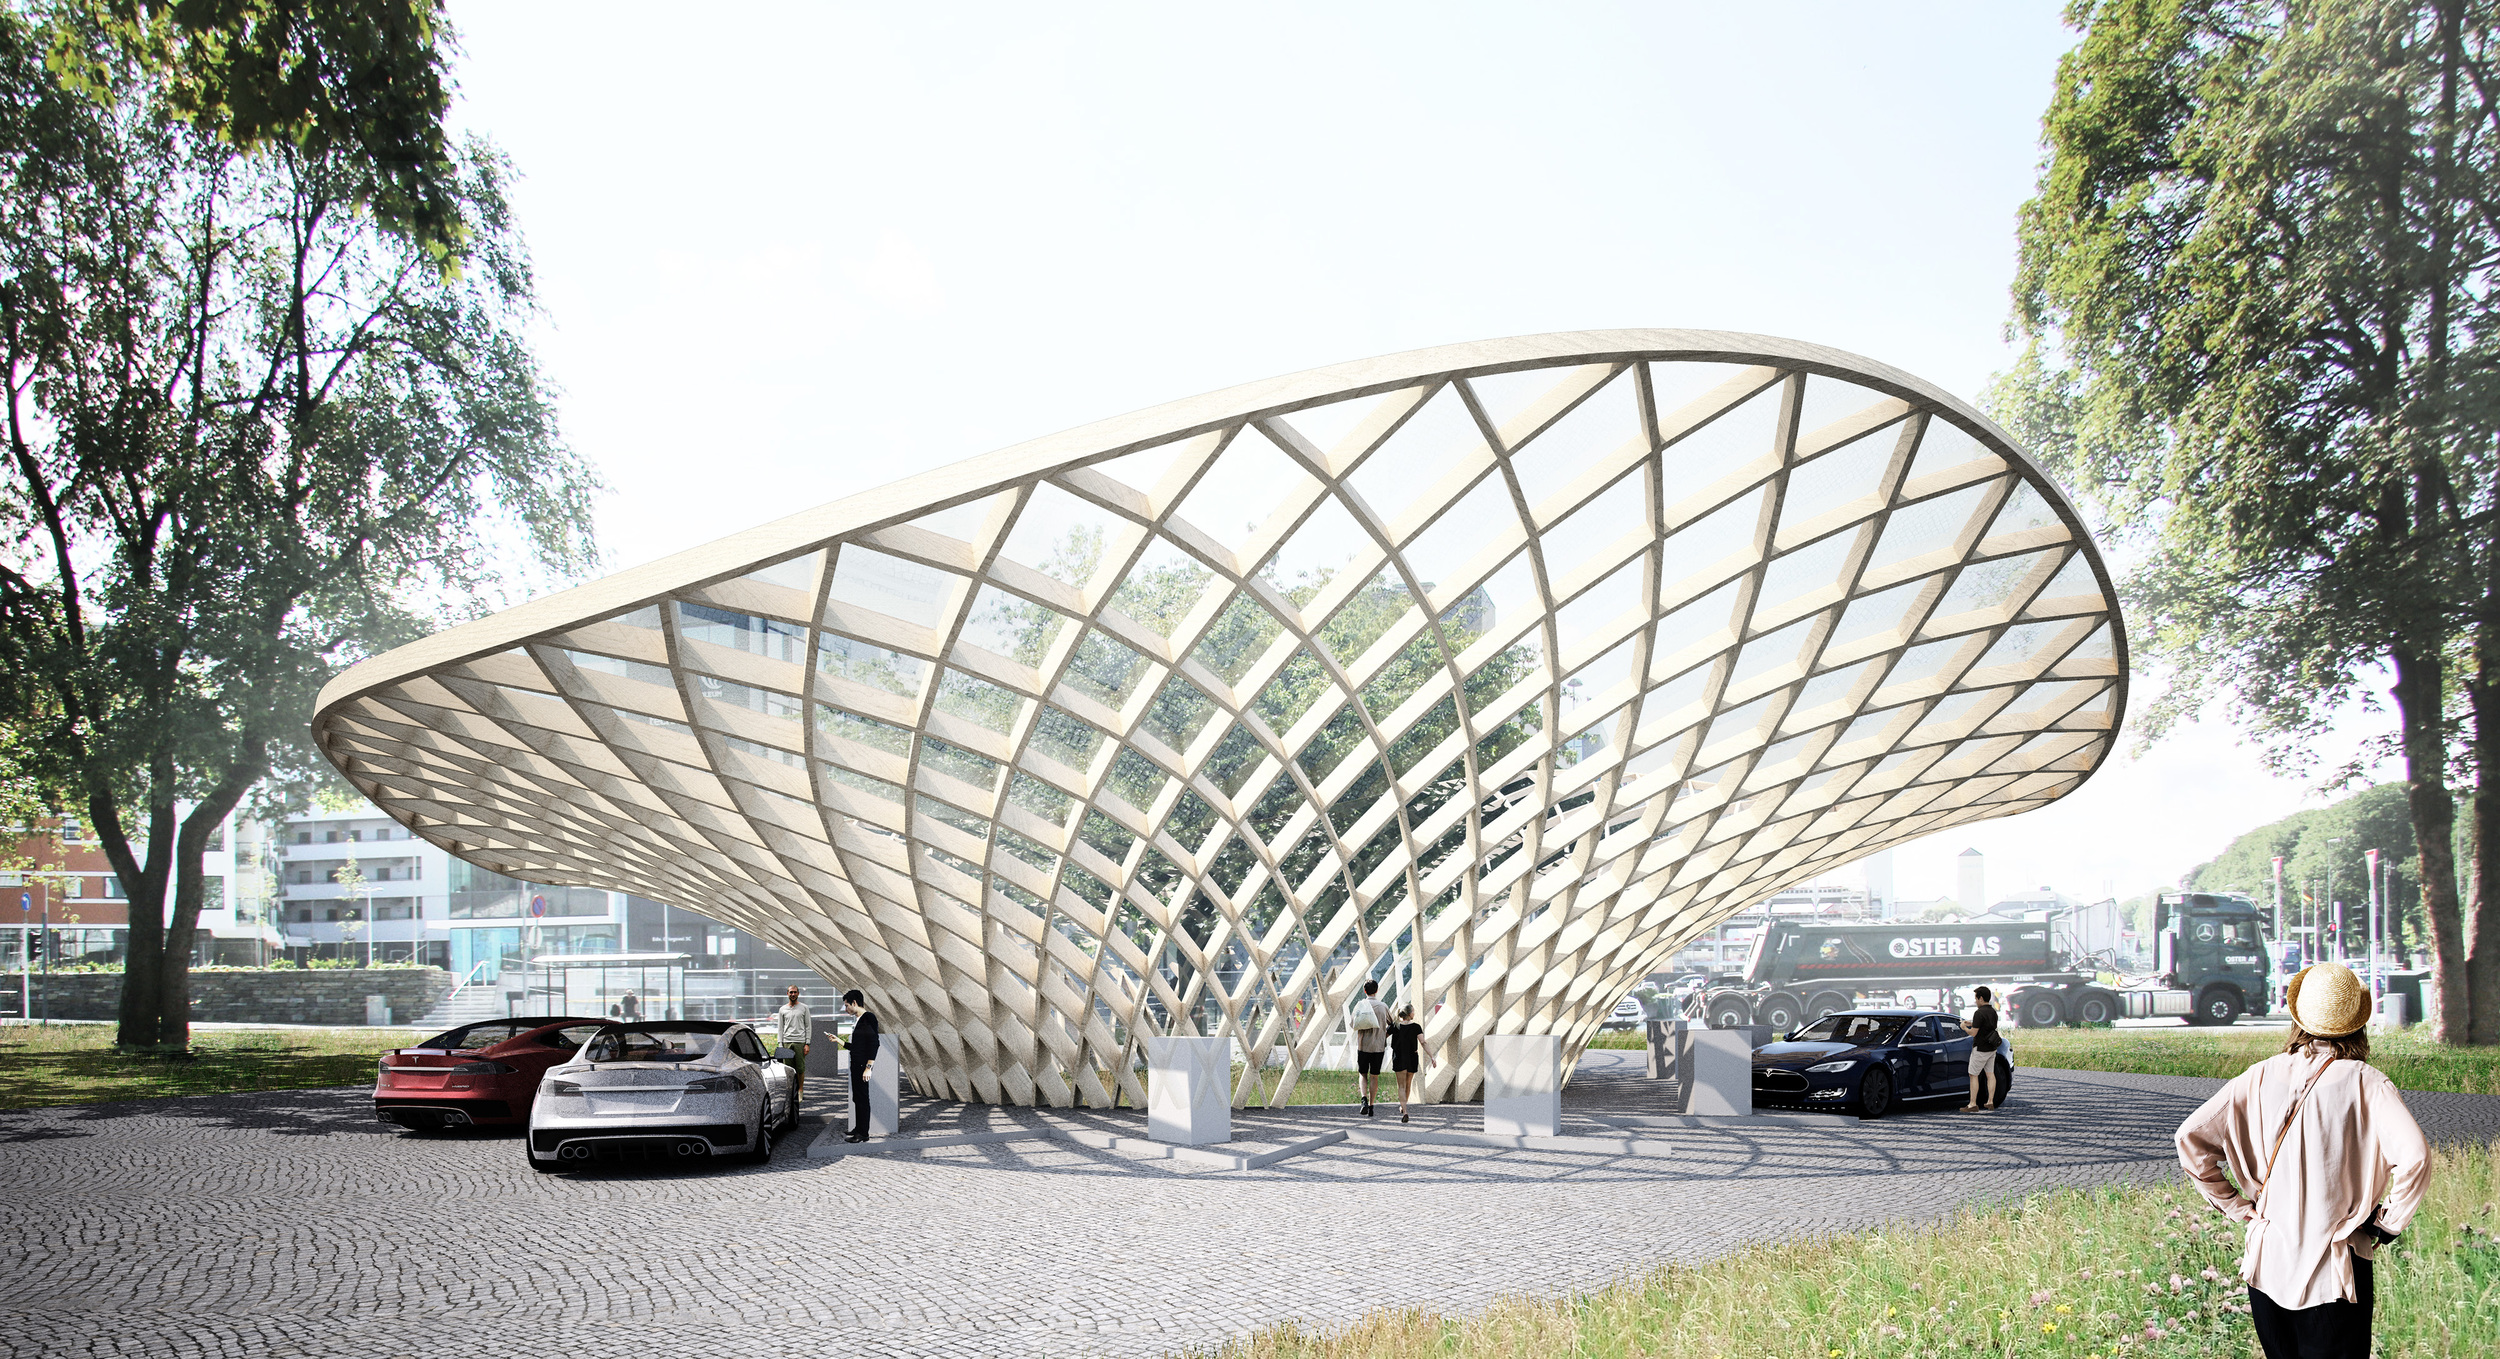 Teemu Seppänen, Auvo Lindroos: Buzz, a charging station for electric cars, 2014.